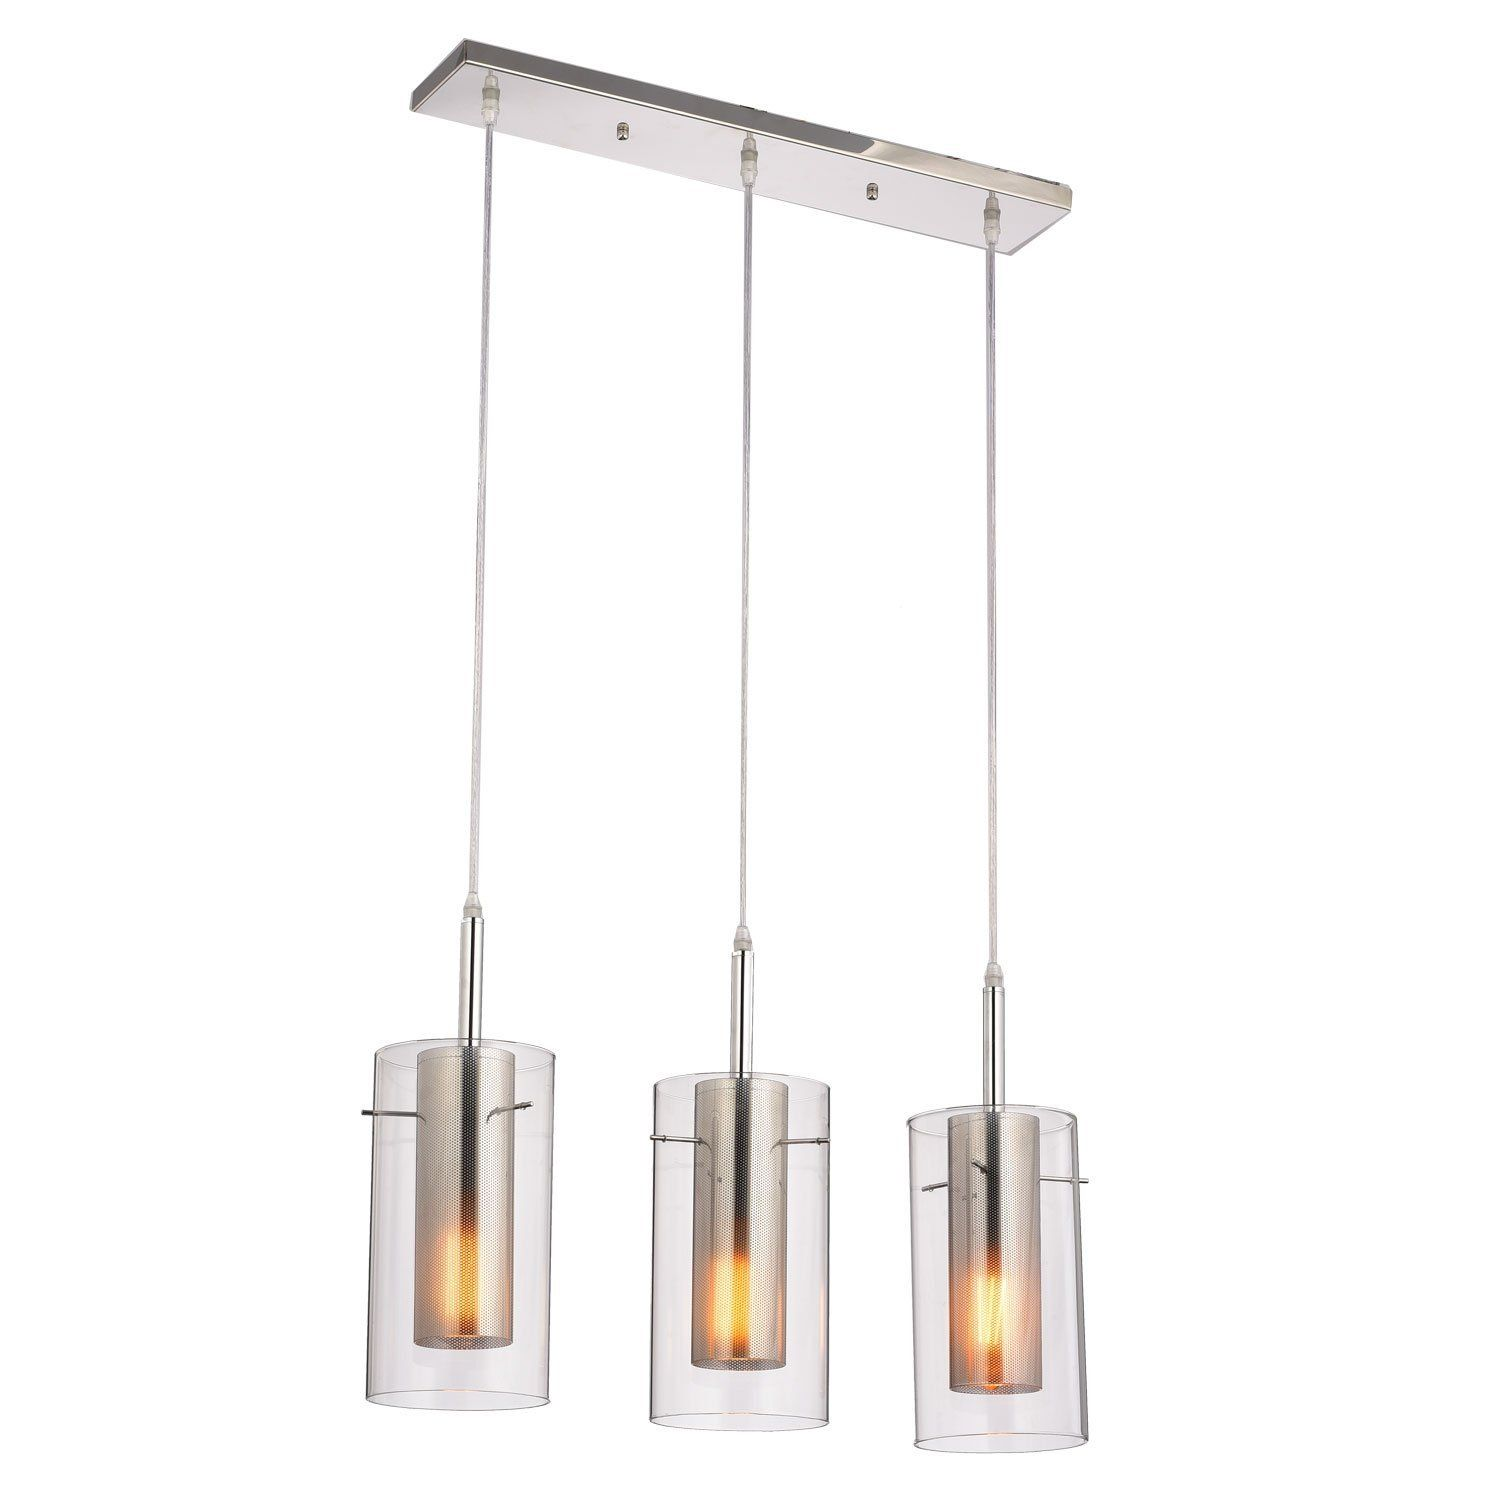 Claxy Ecopower Chrome Kitchen Pendant Lighting Fixture Lights - Kitchen pendant lighting amazon